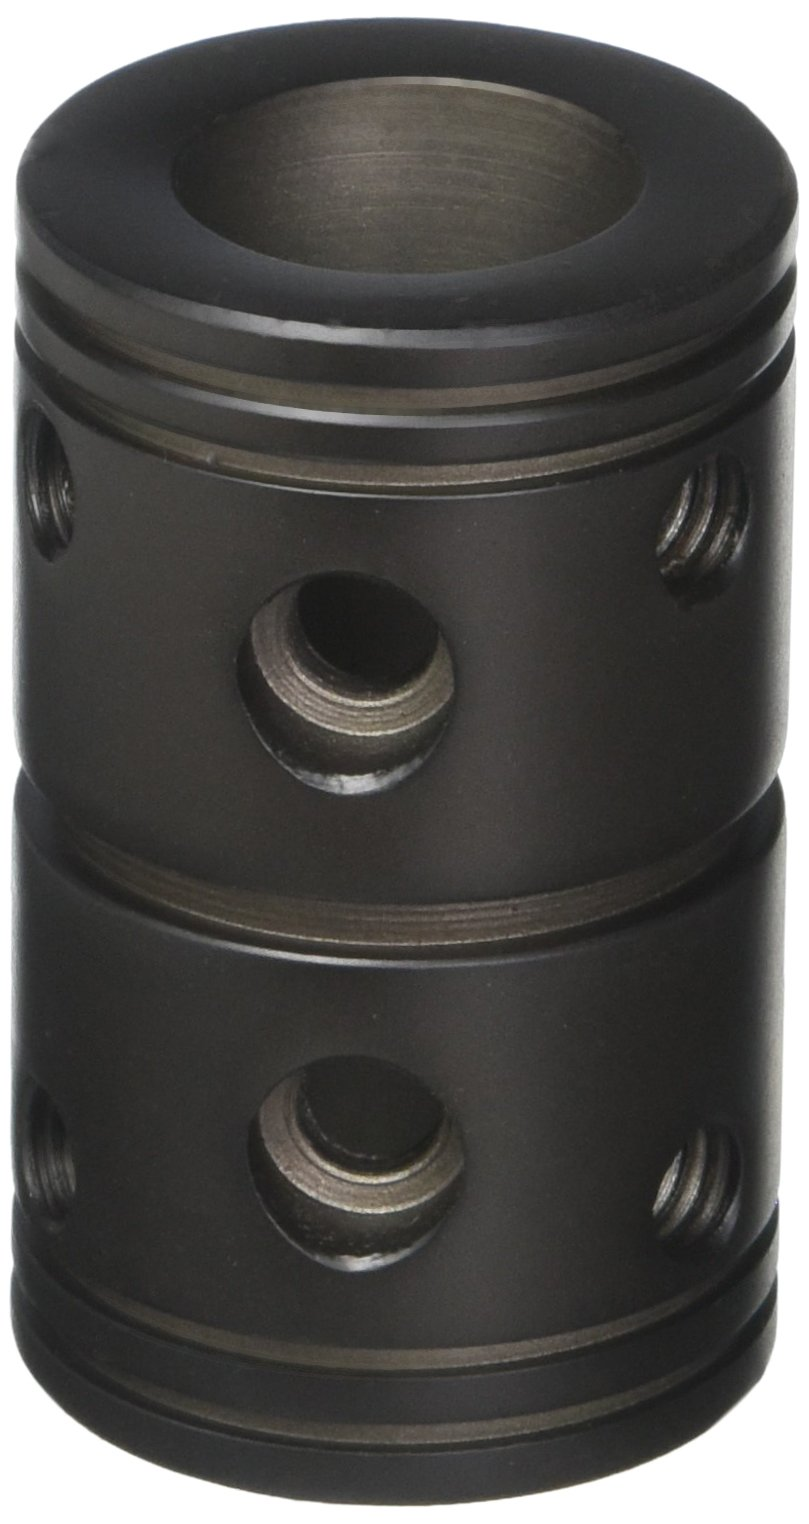 Emerson CFDCORB Downrod Coupler, Oil Rubbed Bronze, 43 Piece